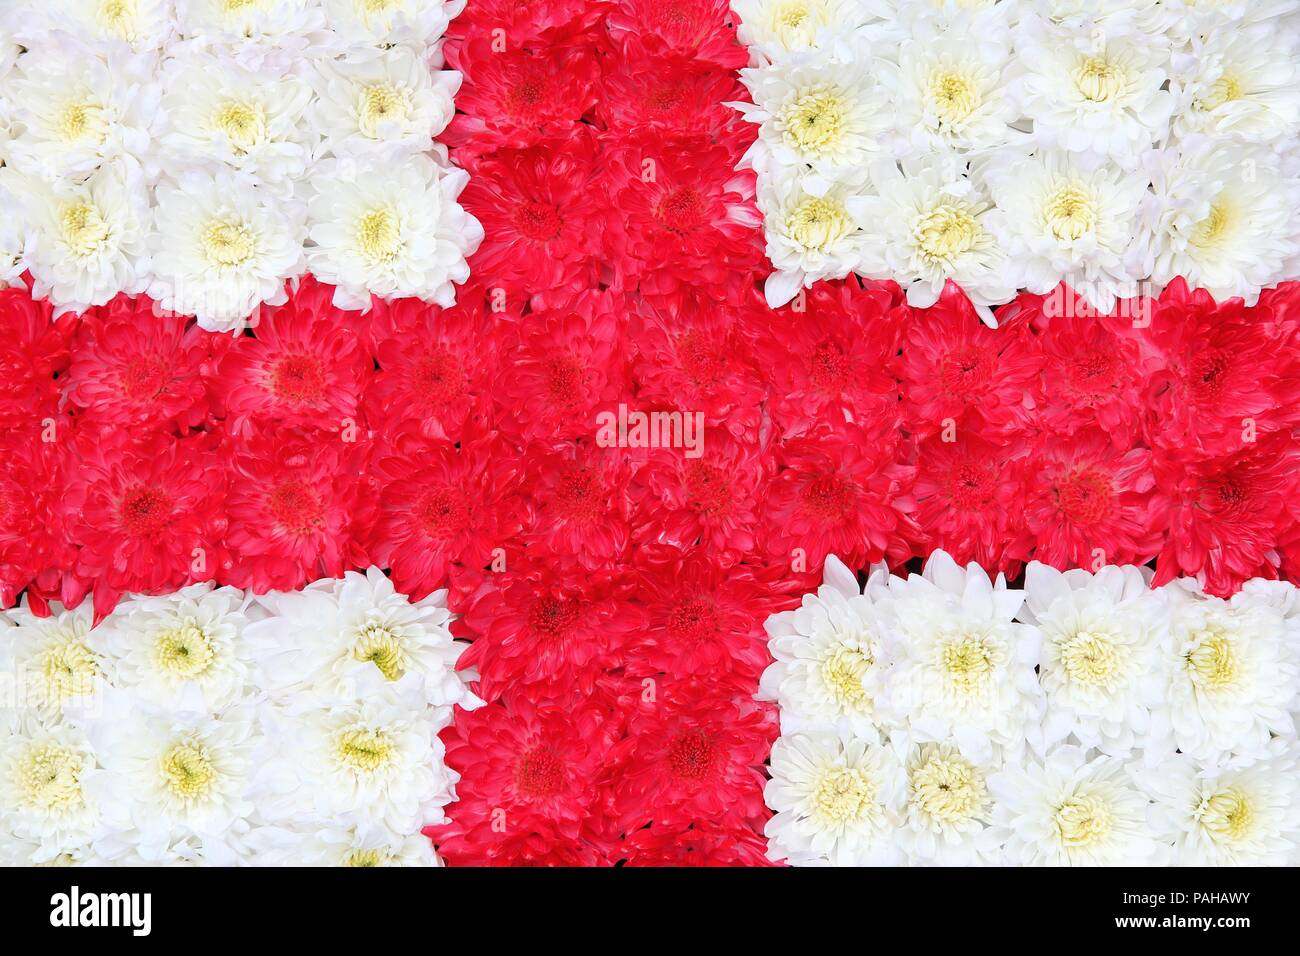 Flag Of England Made Of Red And White Flowers Stock Photo 213052727